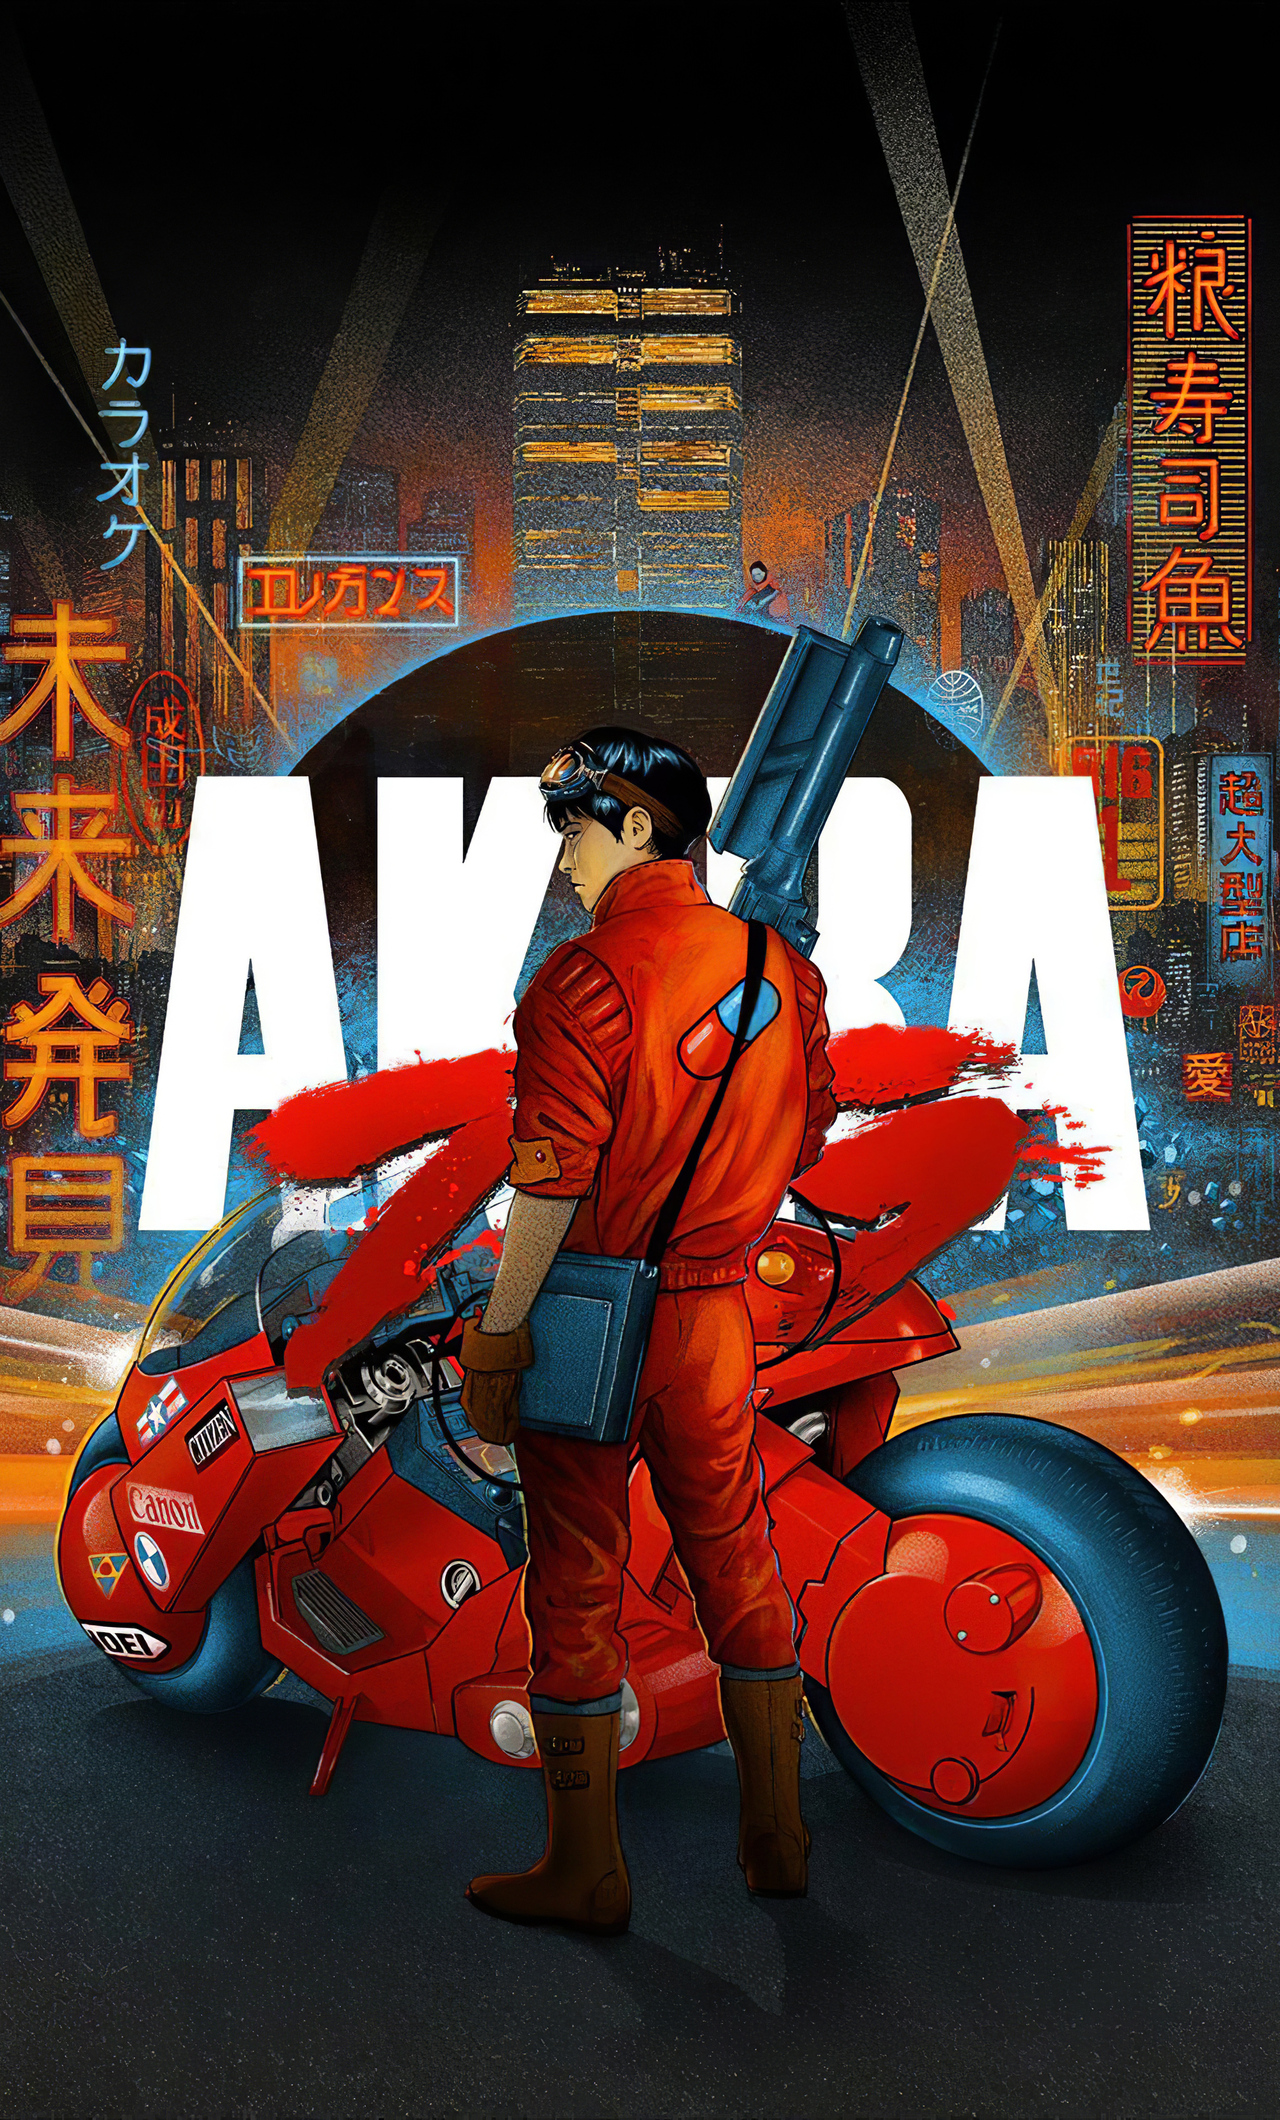 1280x2120 Akira 1988 Iphone 6 Hd 4k Wallpapers Images Backgrounds Photos And Pictures